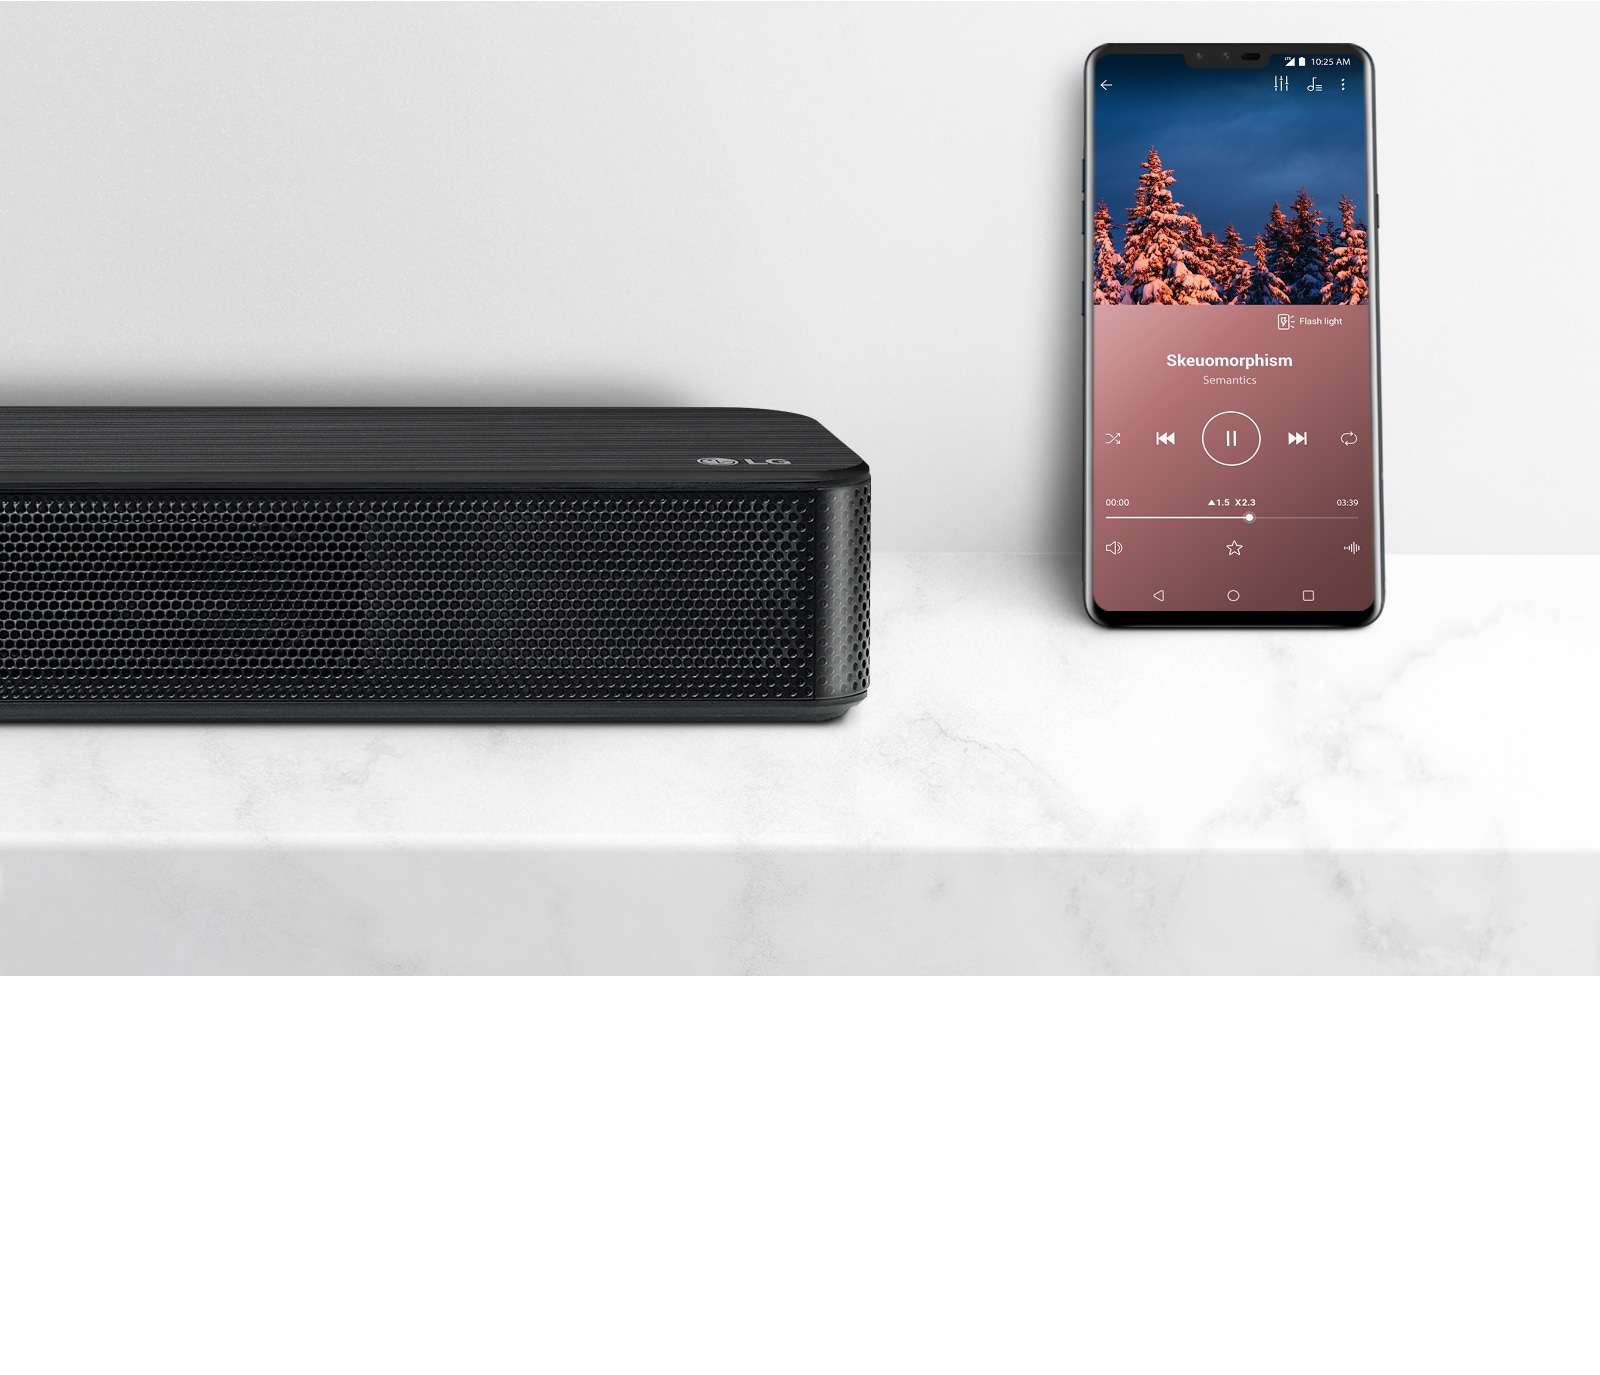 Close-up right side of LG Soundbar next to smartphone. Two devices are on the white shelf.